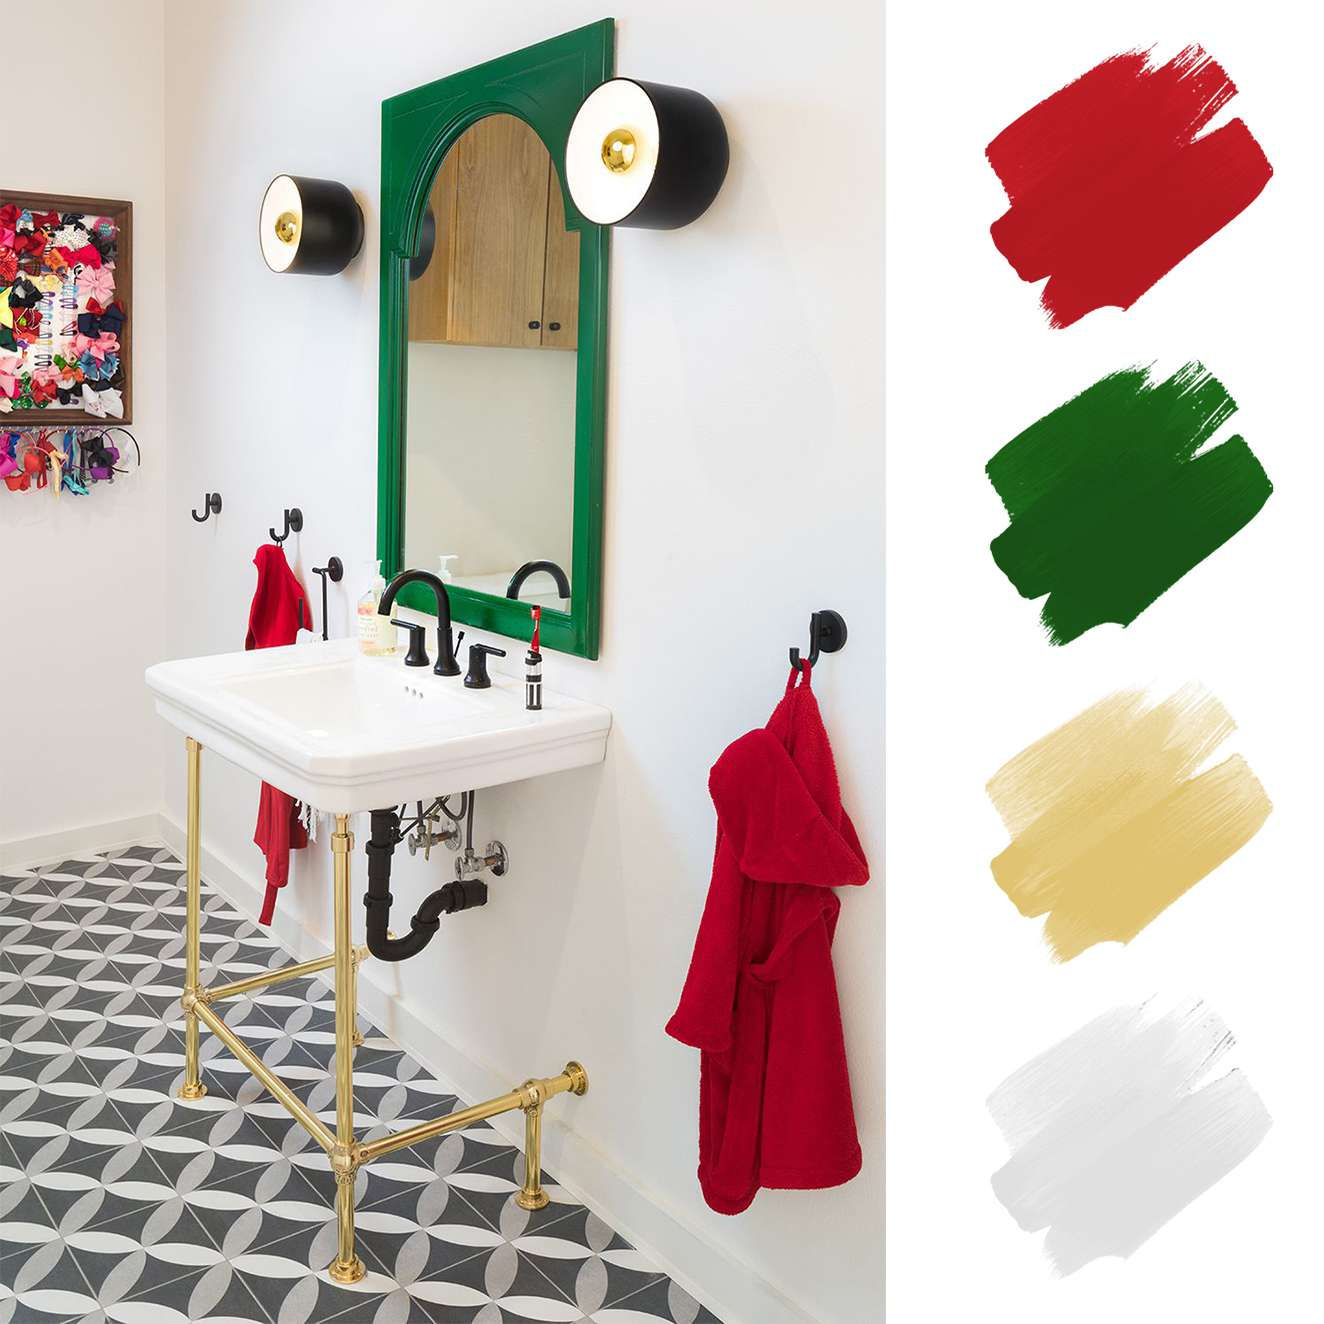 complementary color schemes - red and green bathroom with gold accents